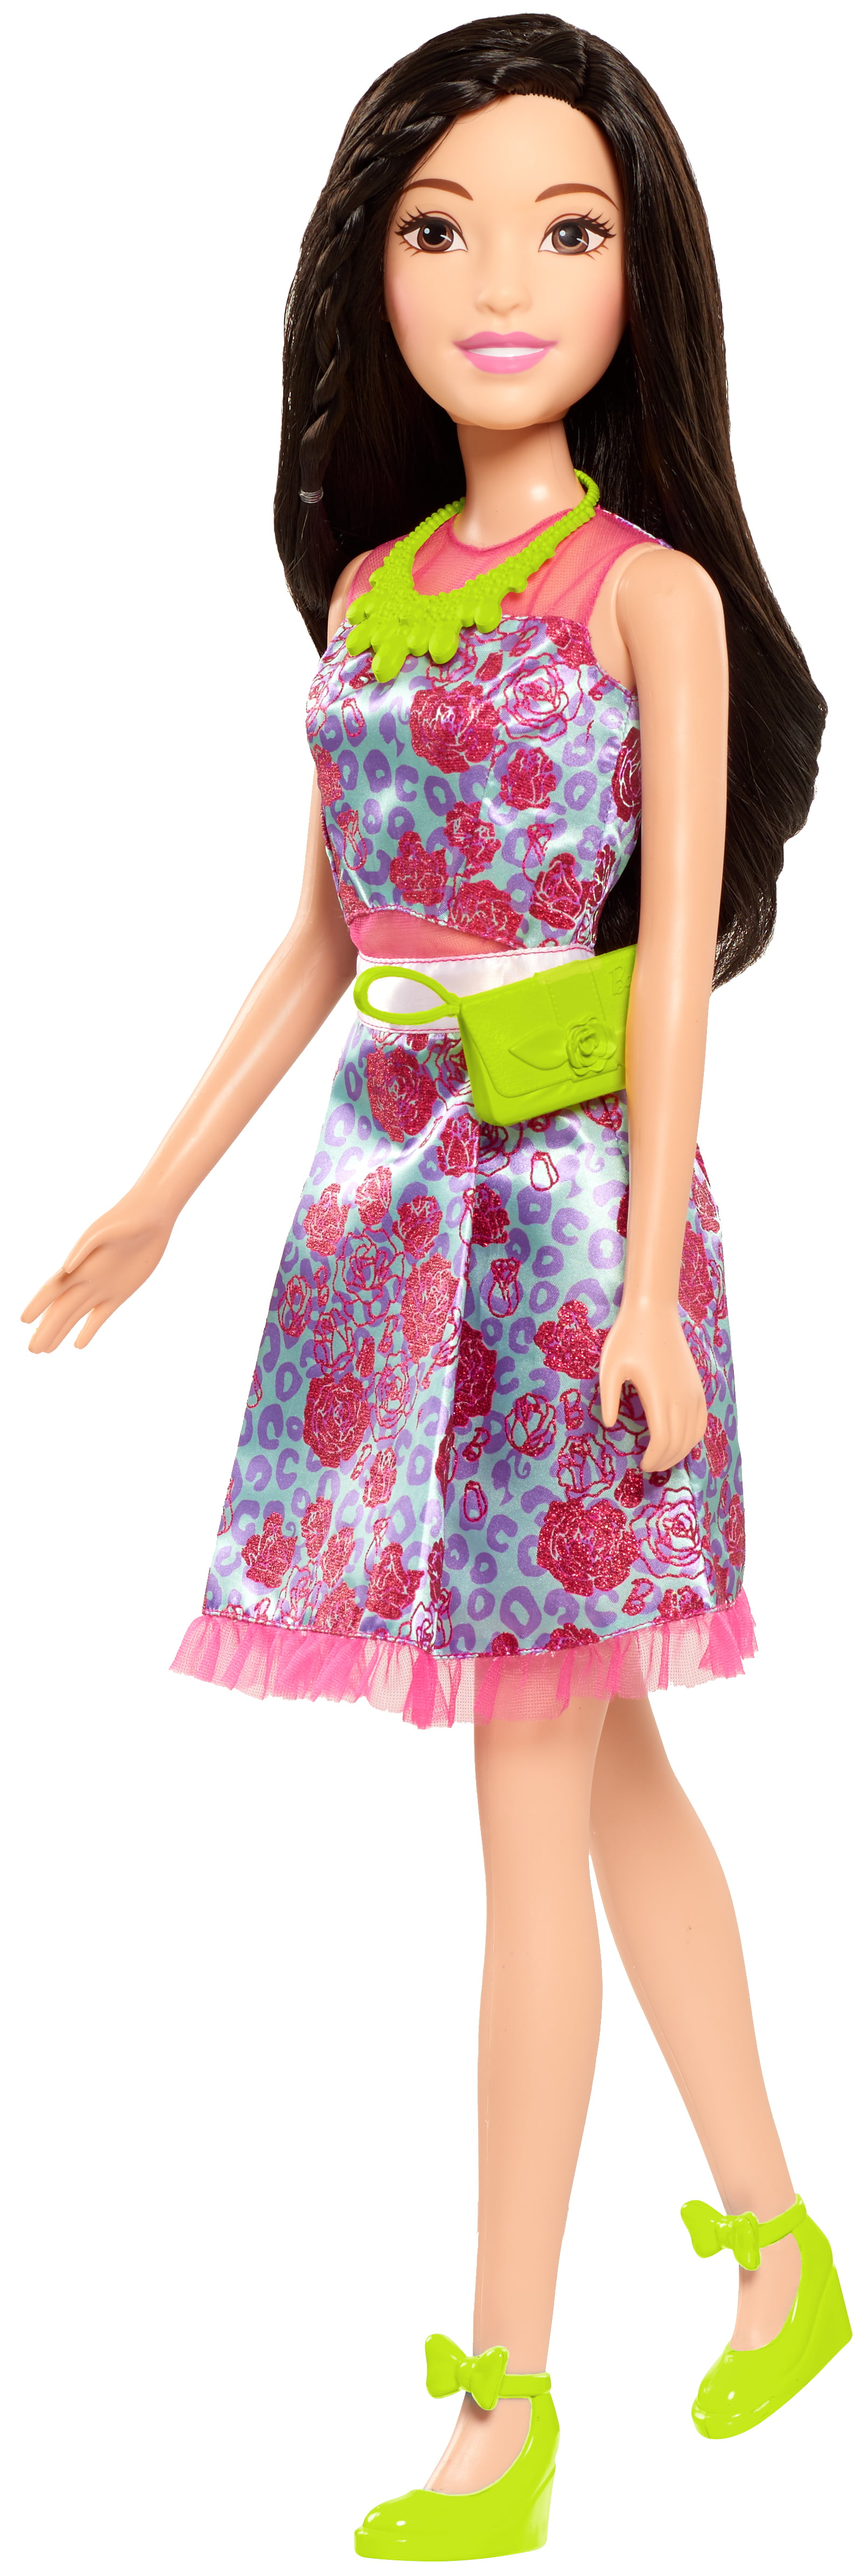 "Barbie 28"" Barbie Olivia Doll Brunette by Just Play"